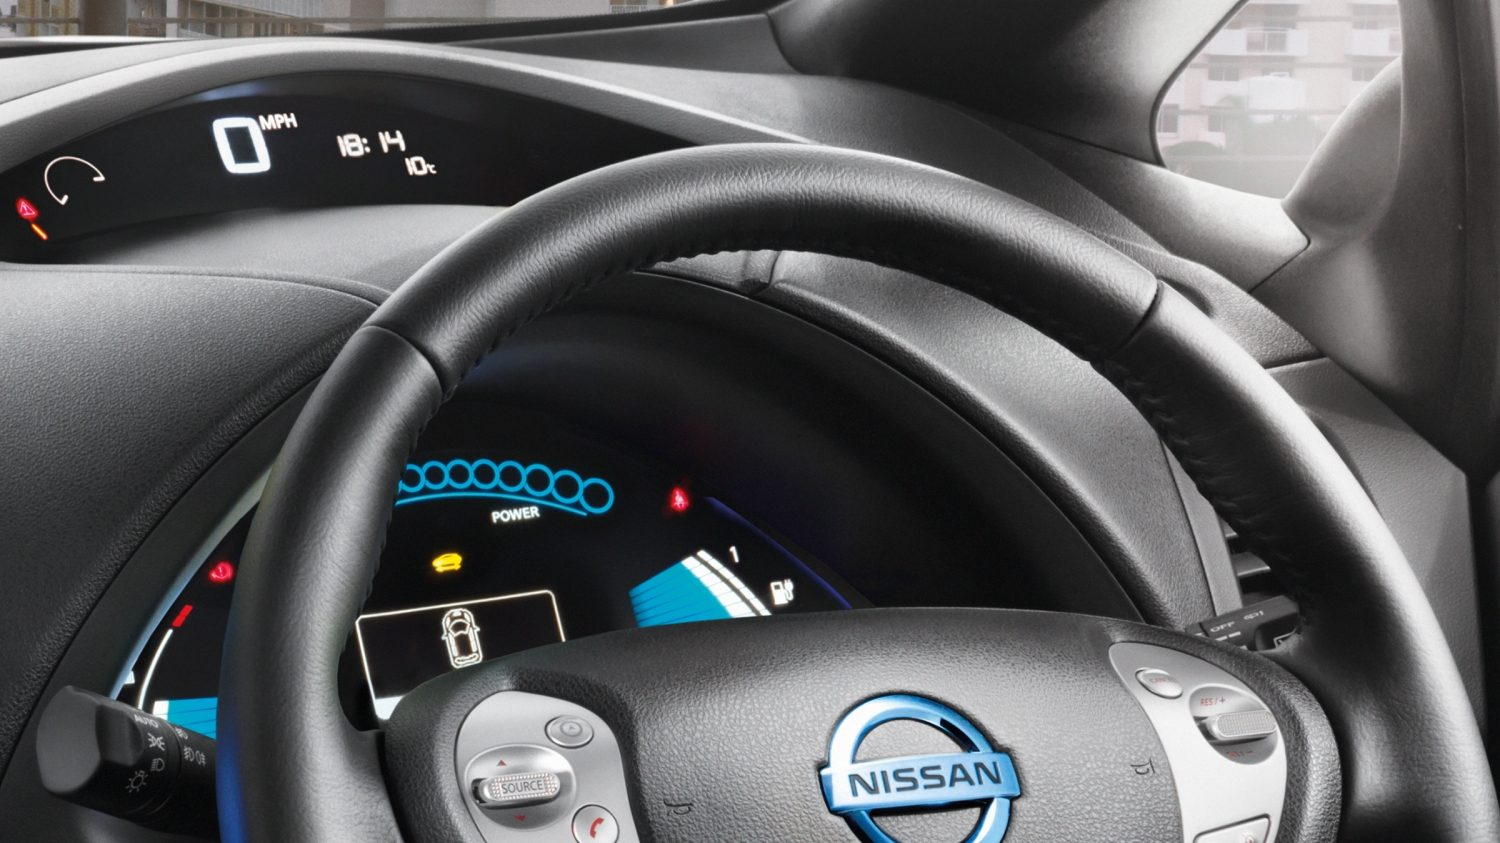 Nissan LEAF Black Edition - Digital dashboard